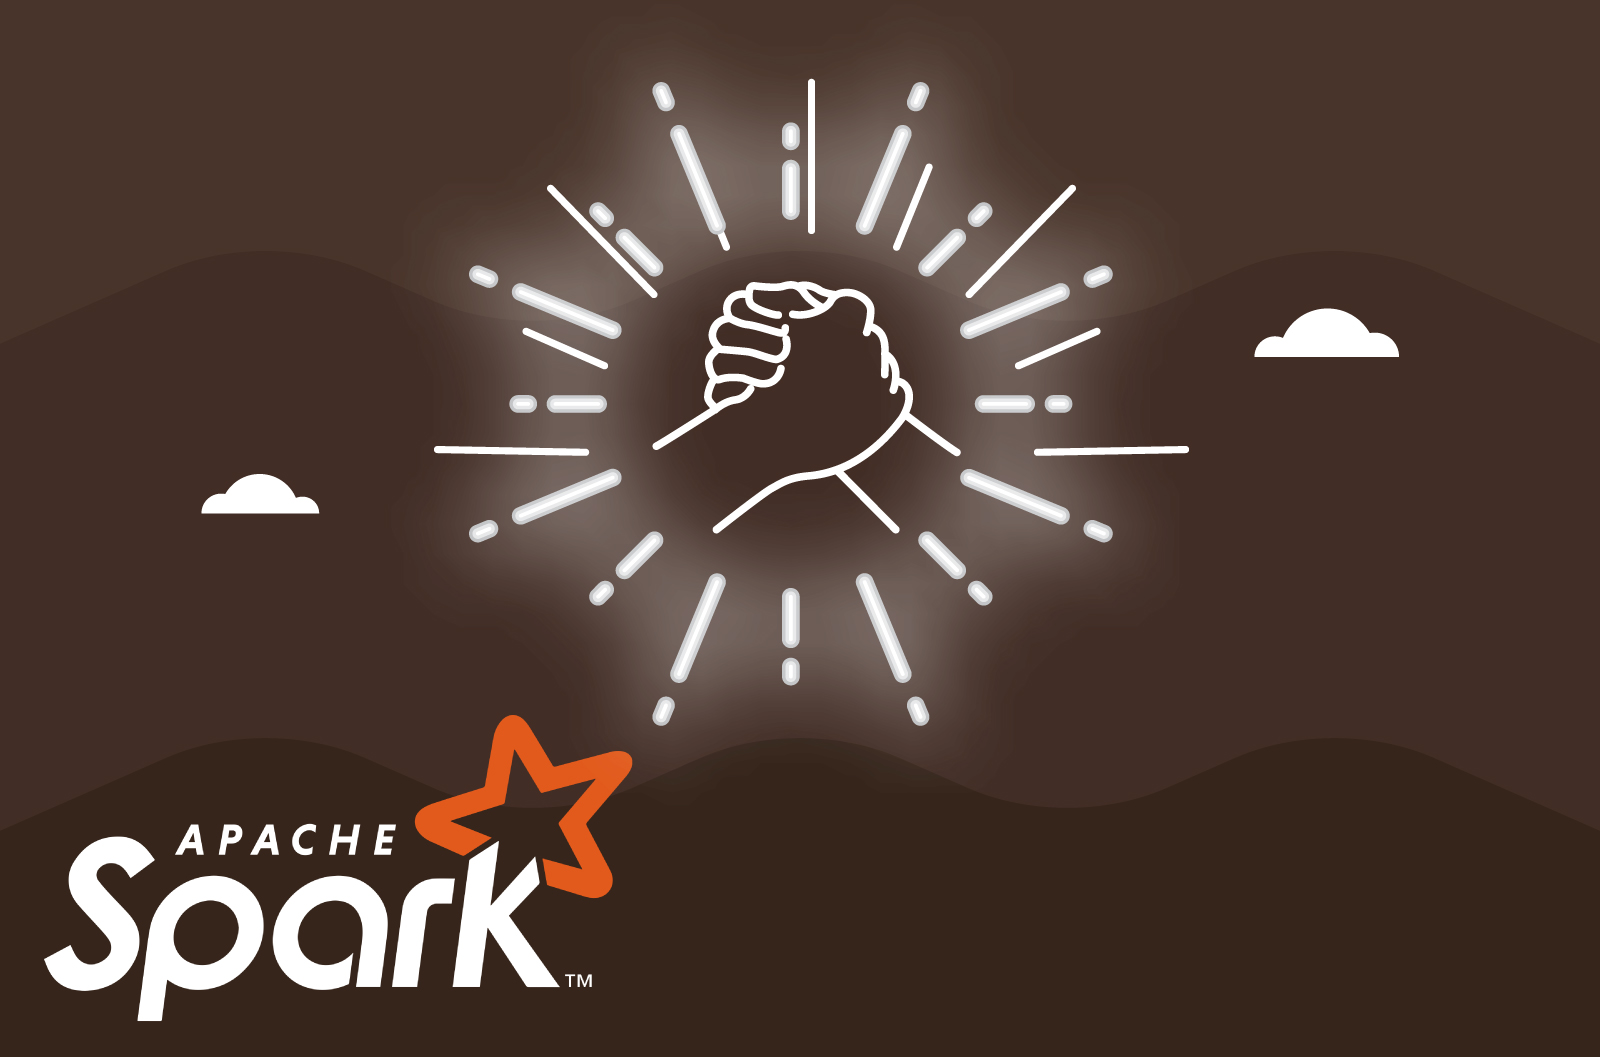 Spark is your friend? – We'll see about that